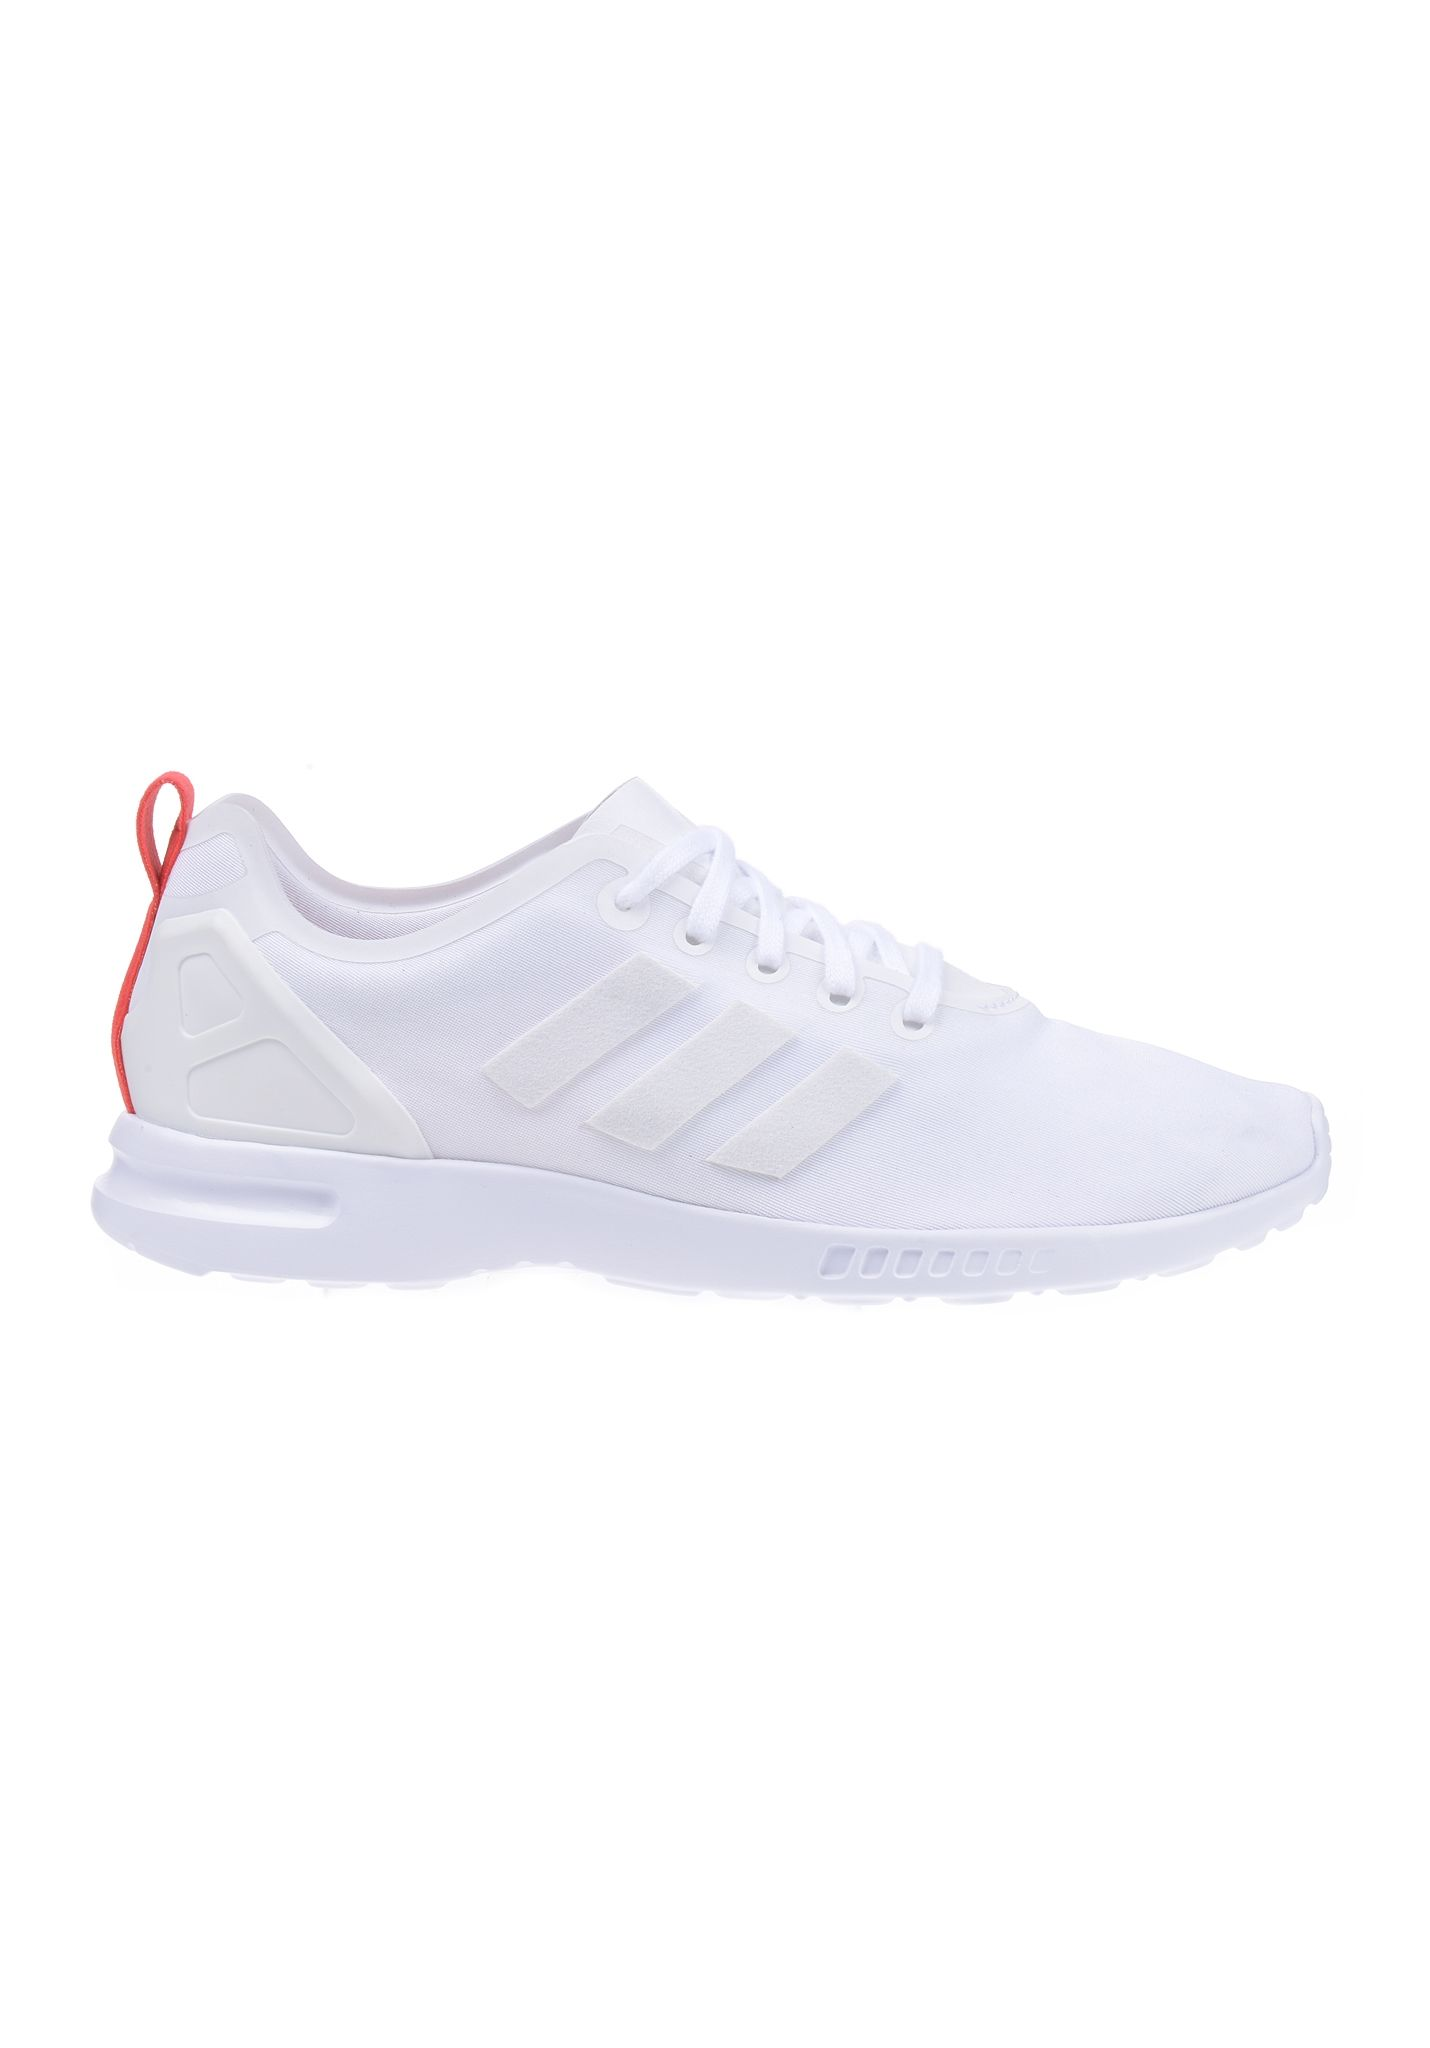 b2a7b10e8bac8 ADIDAS ZX Flux Smooth - Sneakers for Women - White - Planet Sports ...